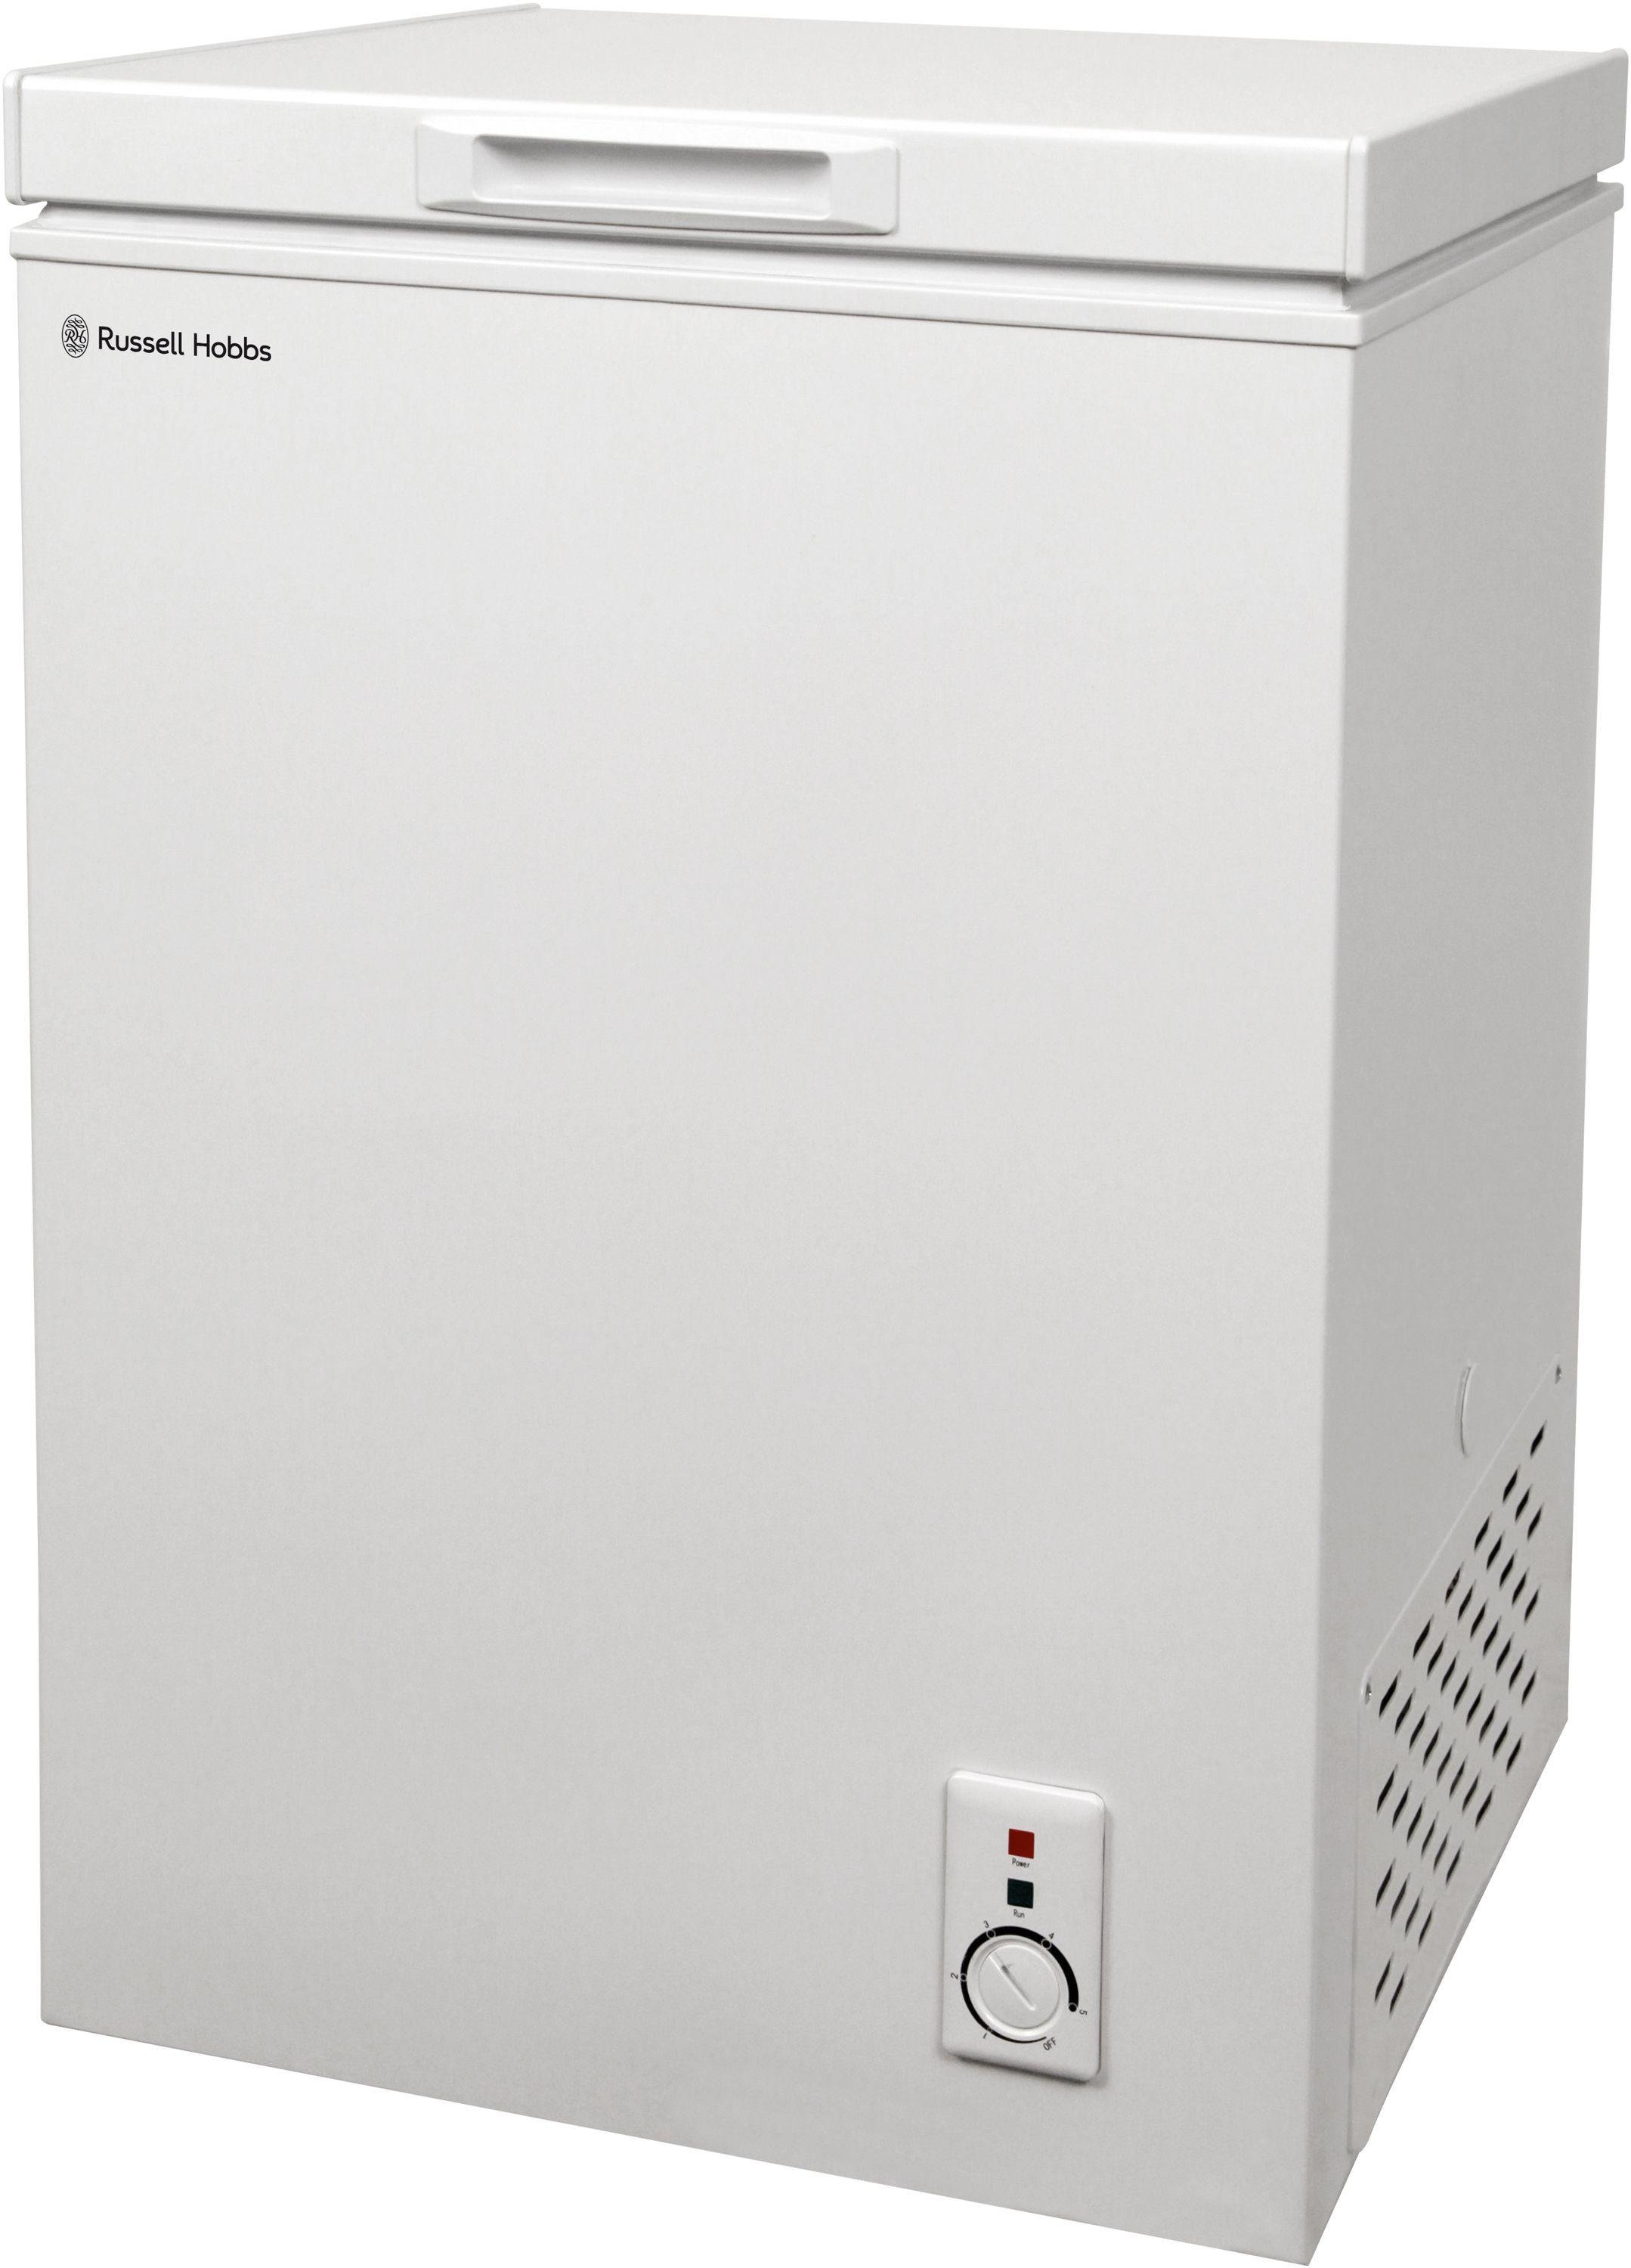 Russell Hobbs - RHCF103 - Chest - Freezer - White